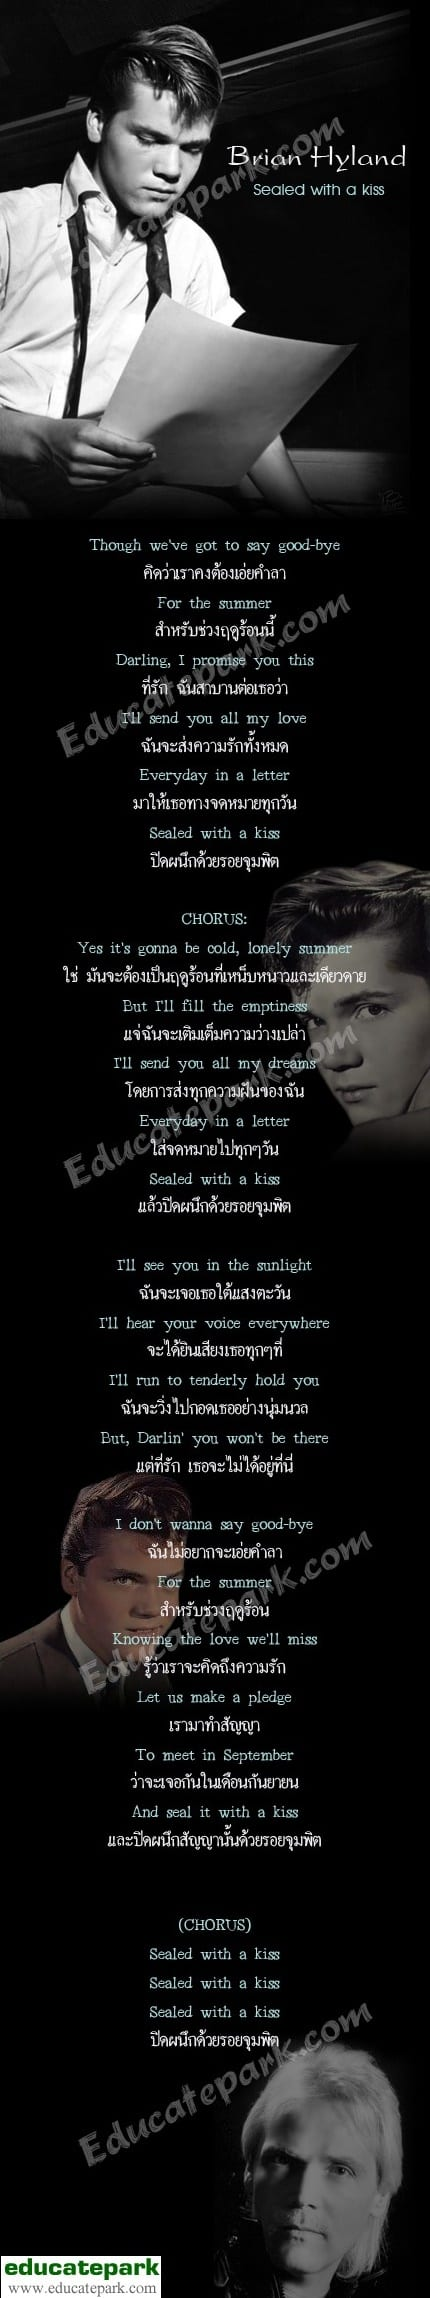 แปลเพลง Sealed with a kiss - Brian Hyland